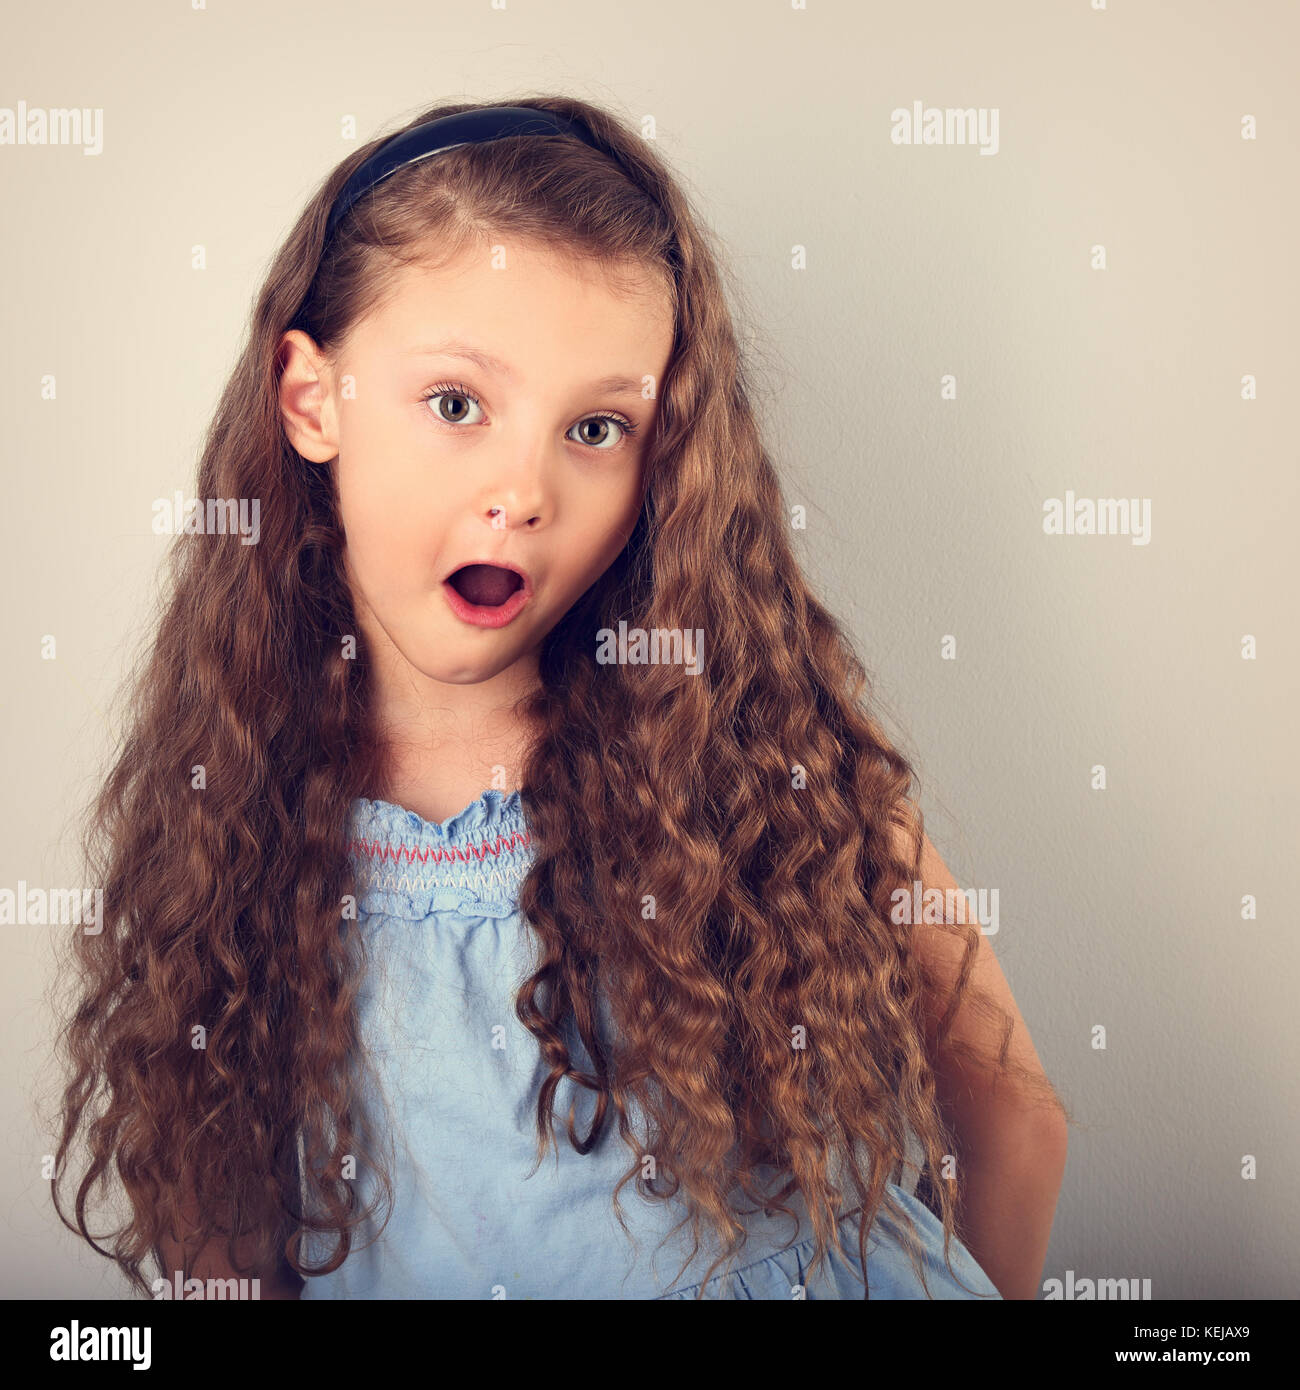 Excited Surprising Kid Girl With Long Curly Hair Style And Wide Open